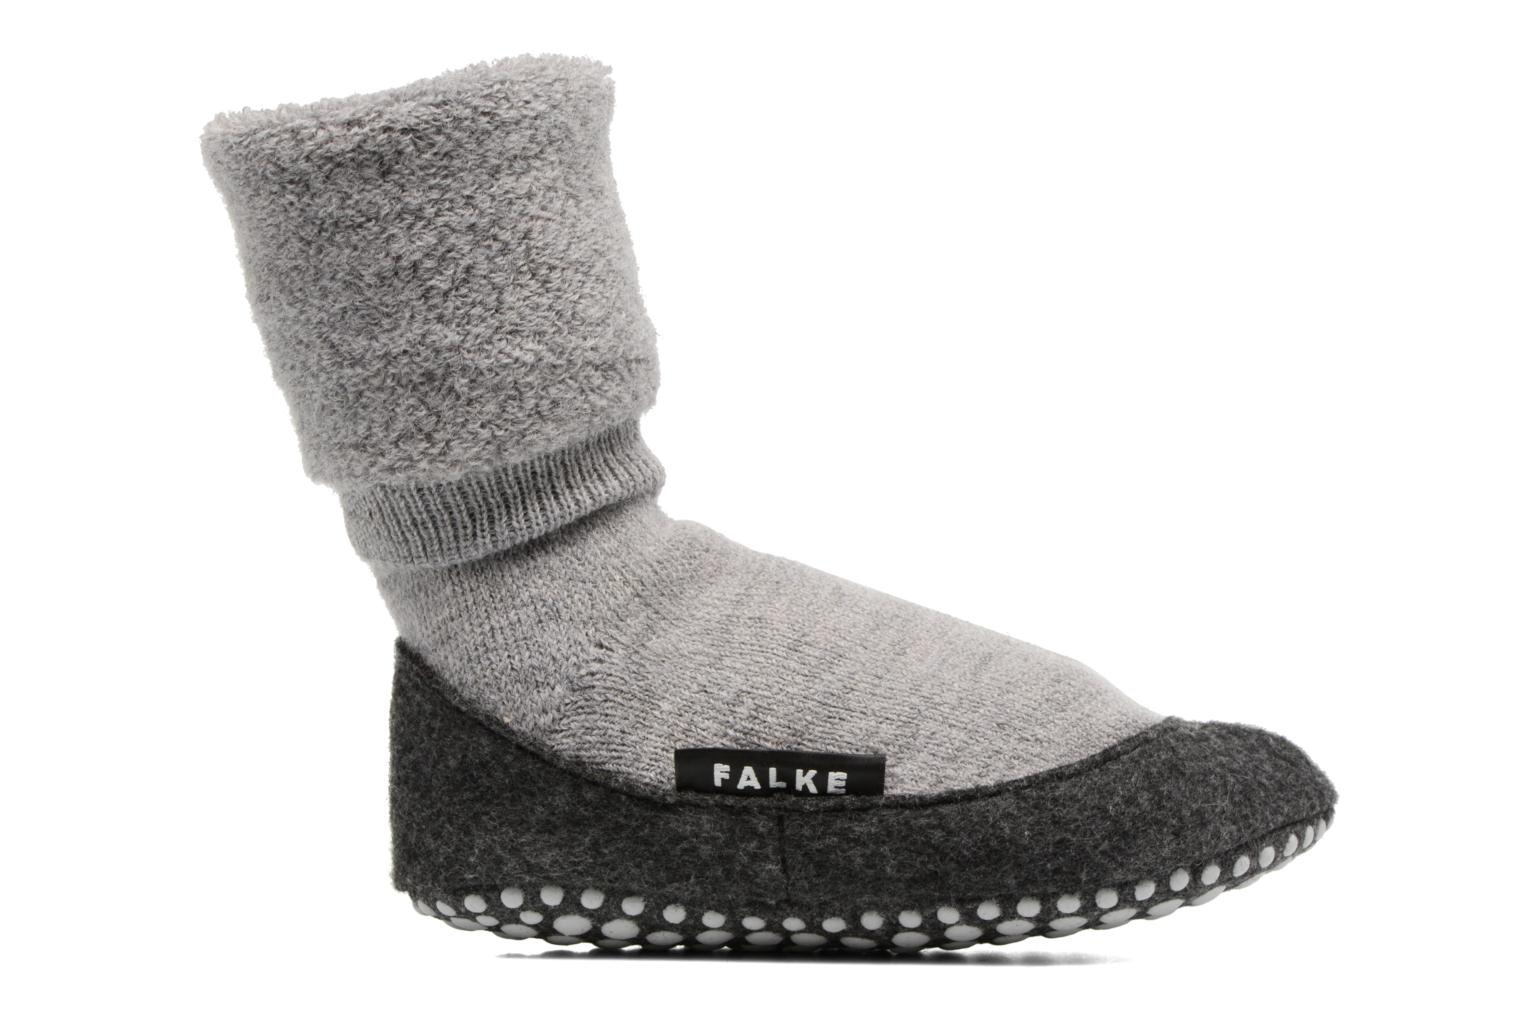 Medias y Calcetines Falke Chaussons-chaussettes Cosyshoes Gris vistra trasera